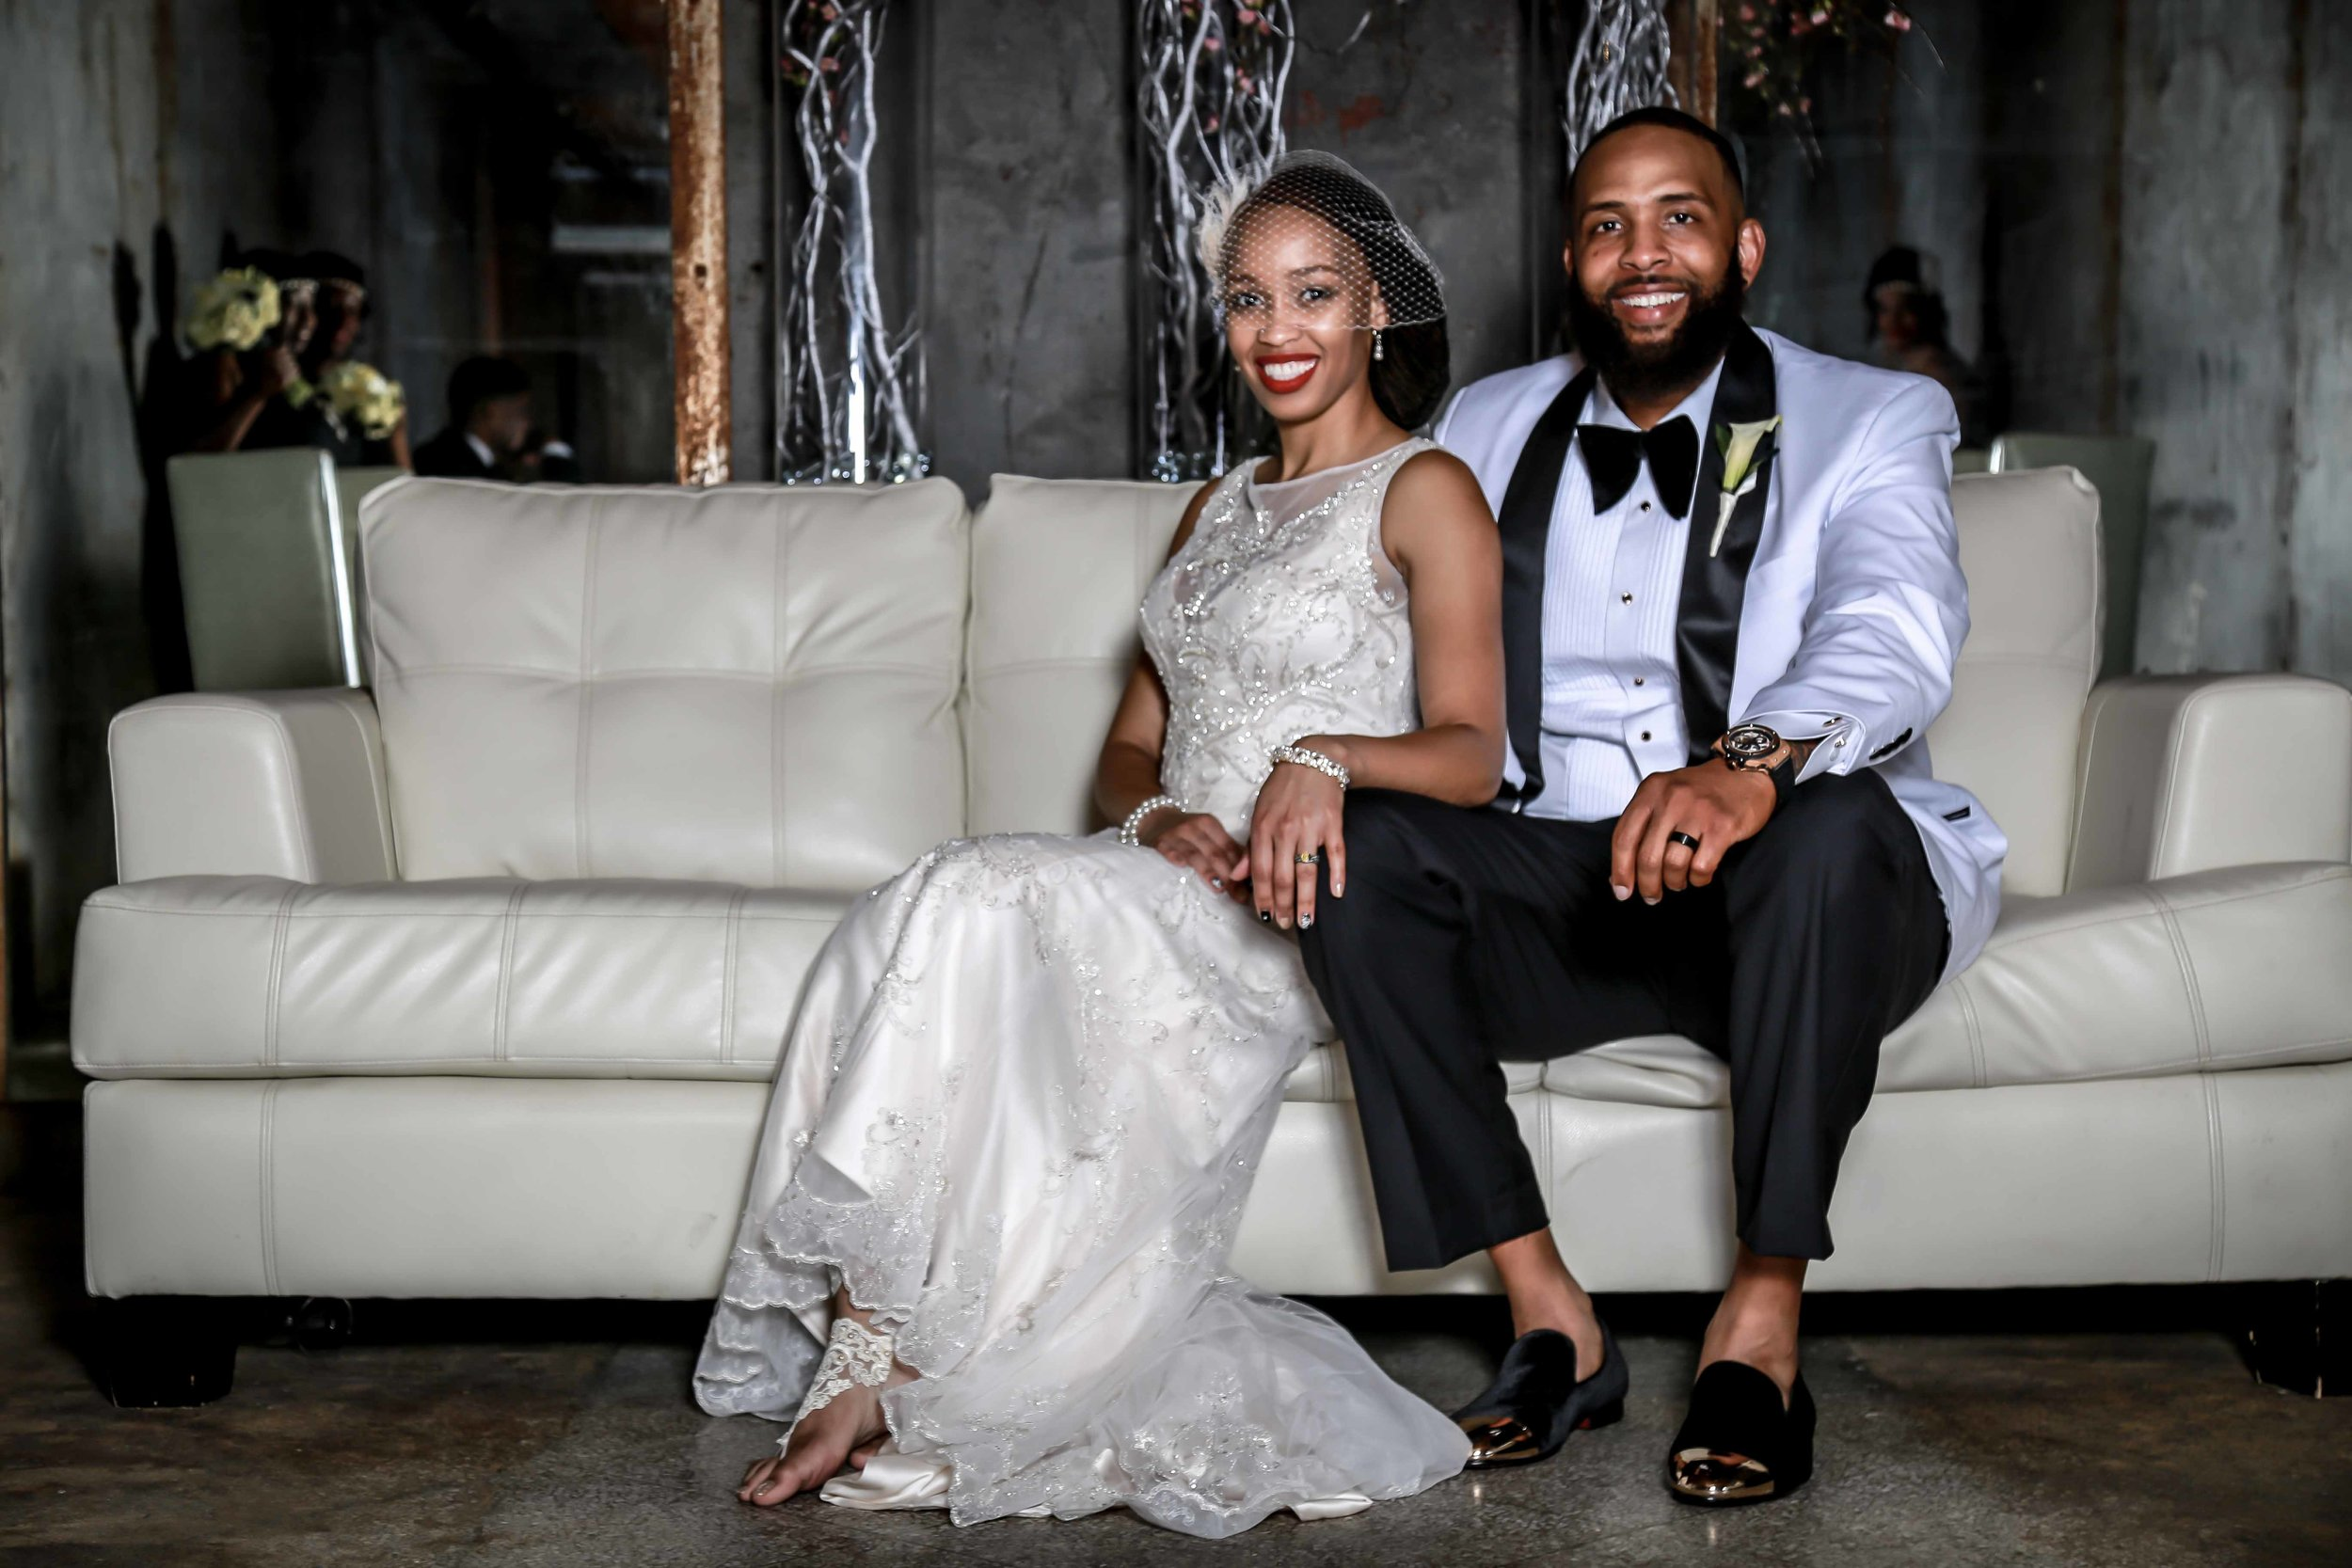 African Black couple wedding photographer and poses in Memphis Collierville TN.jpg